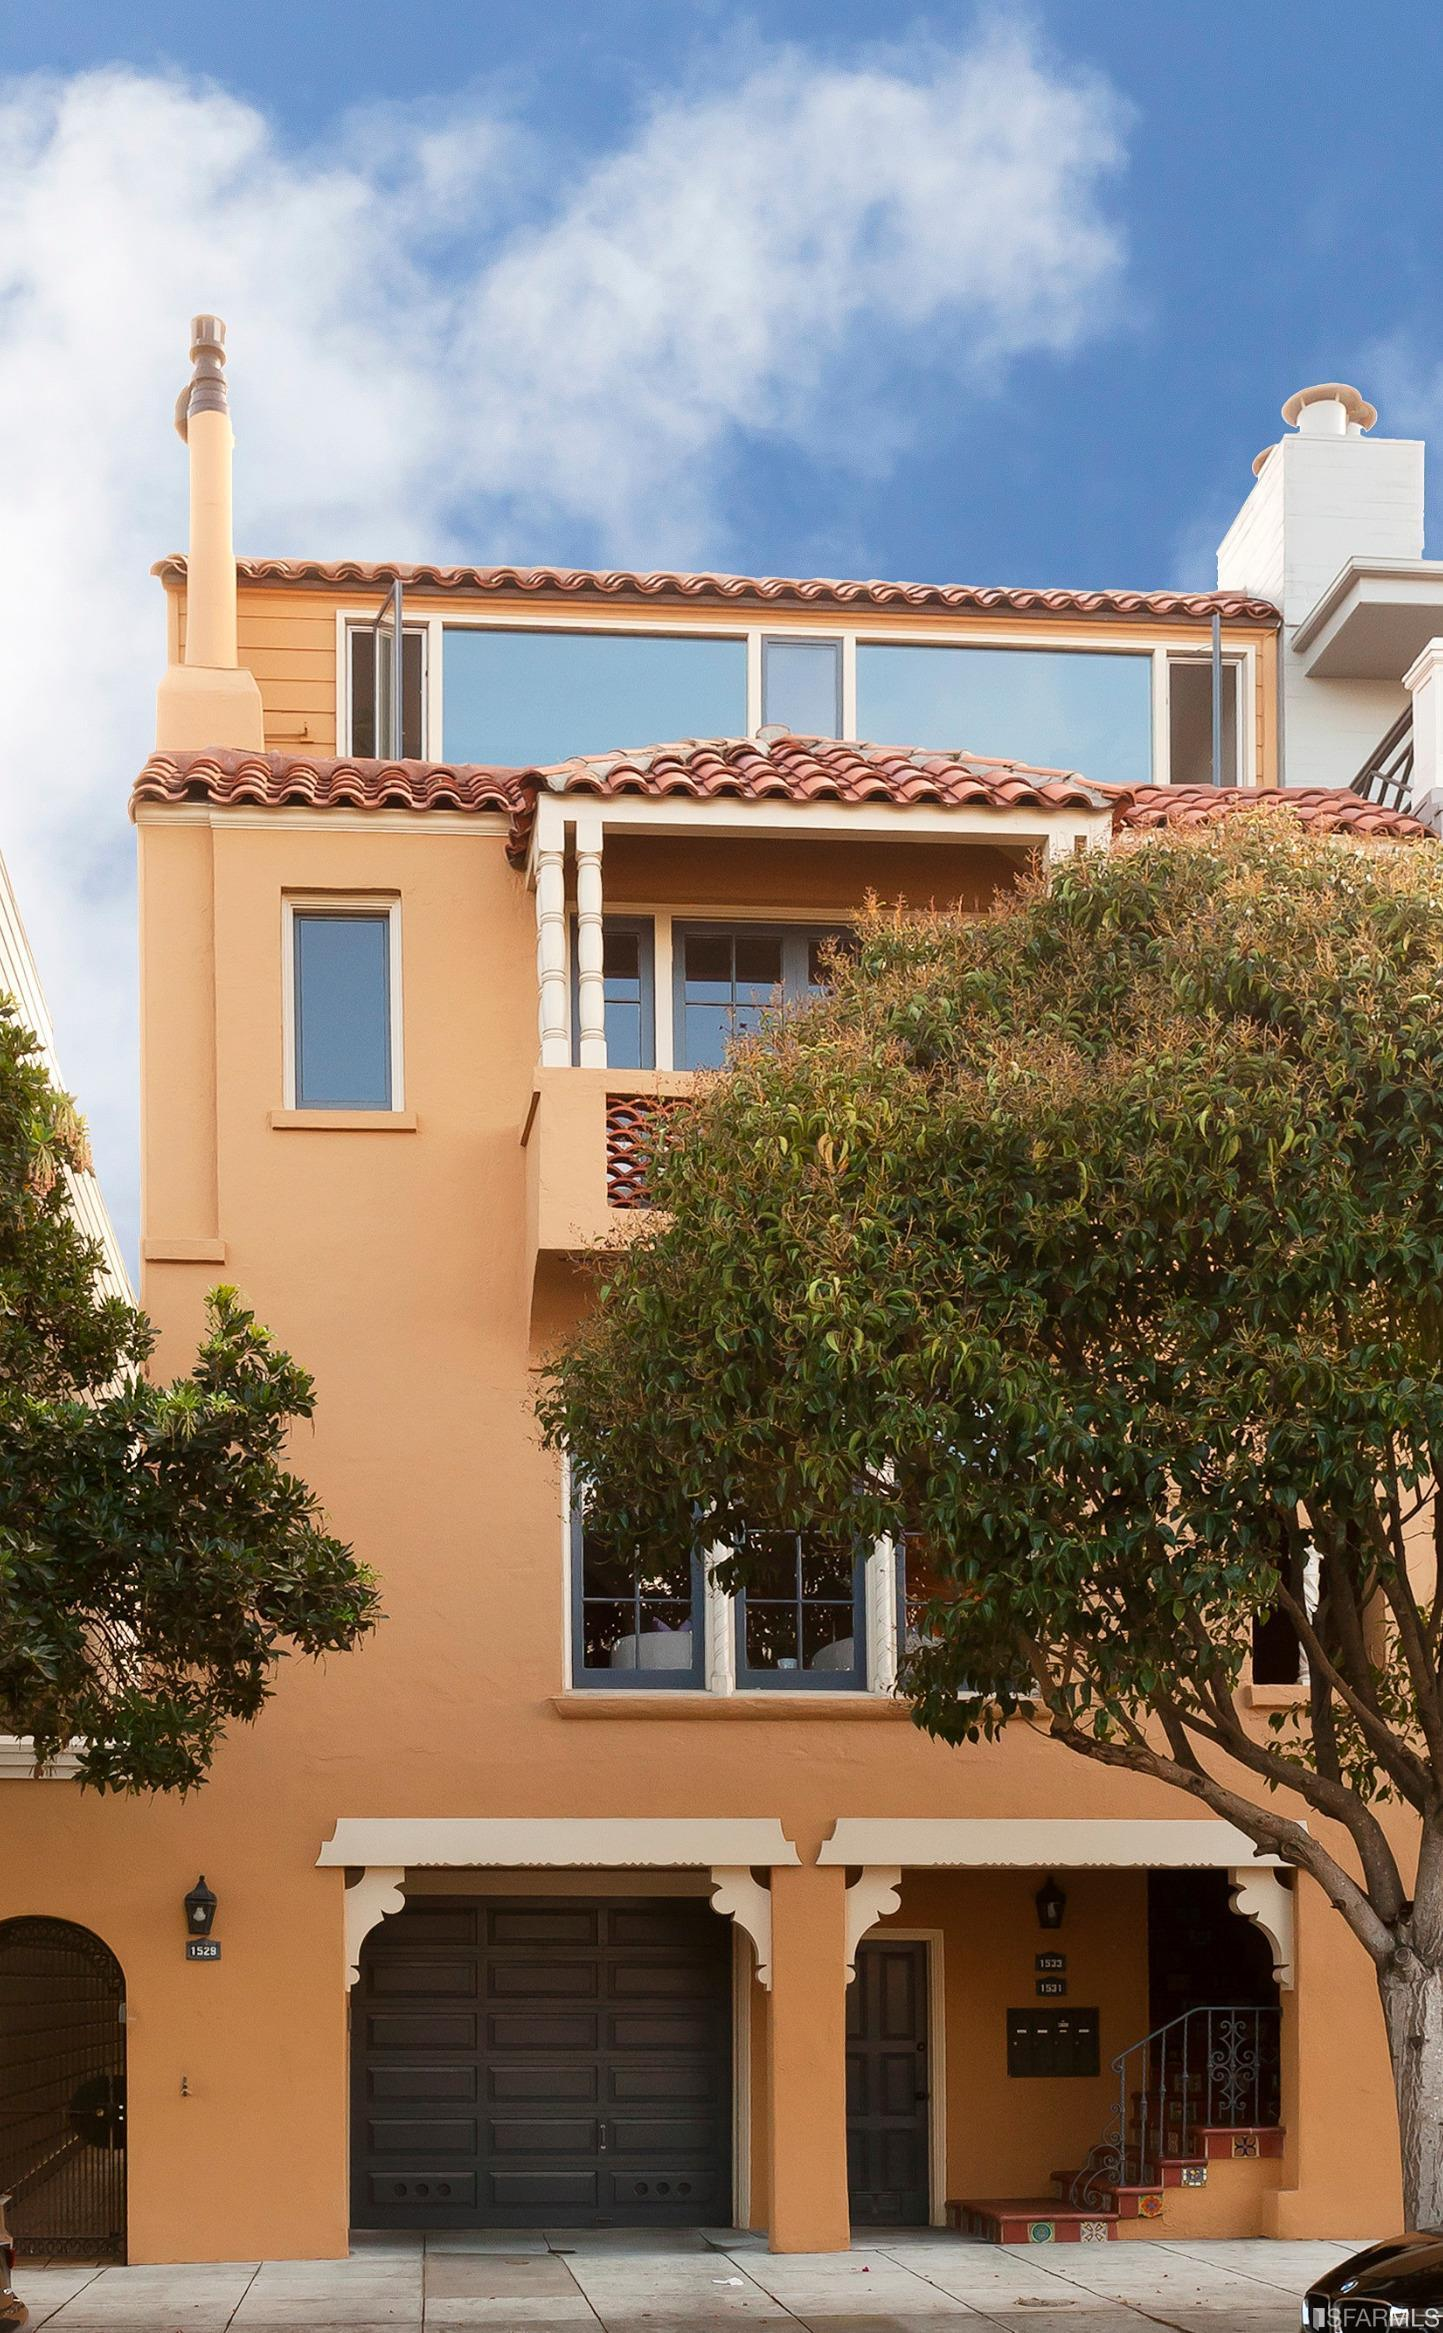 Local San Francisco, CA Real Estate Listings And Homes For Sale | BHGRE